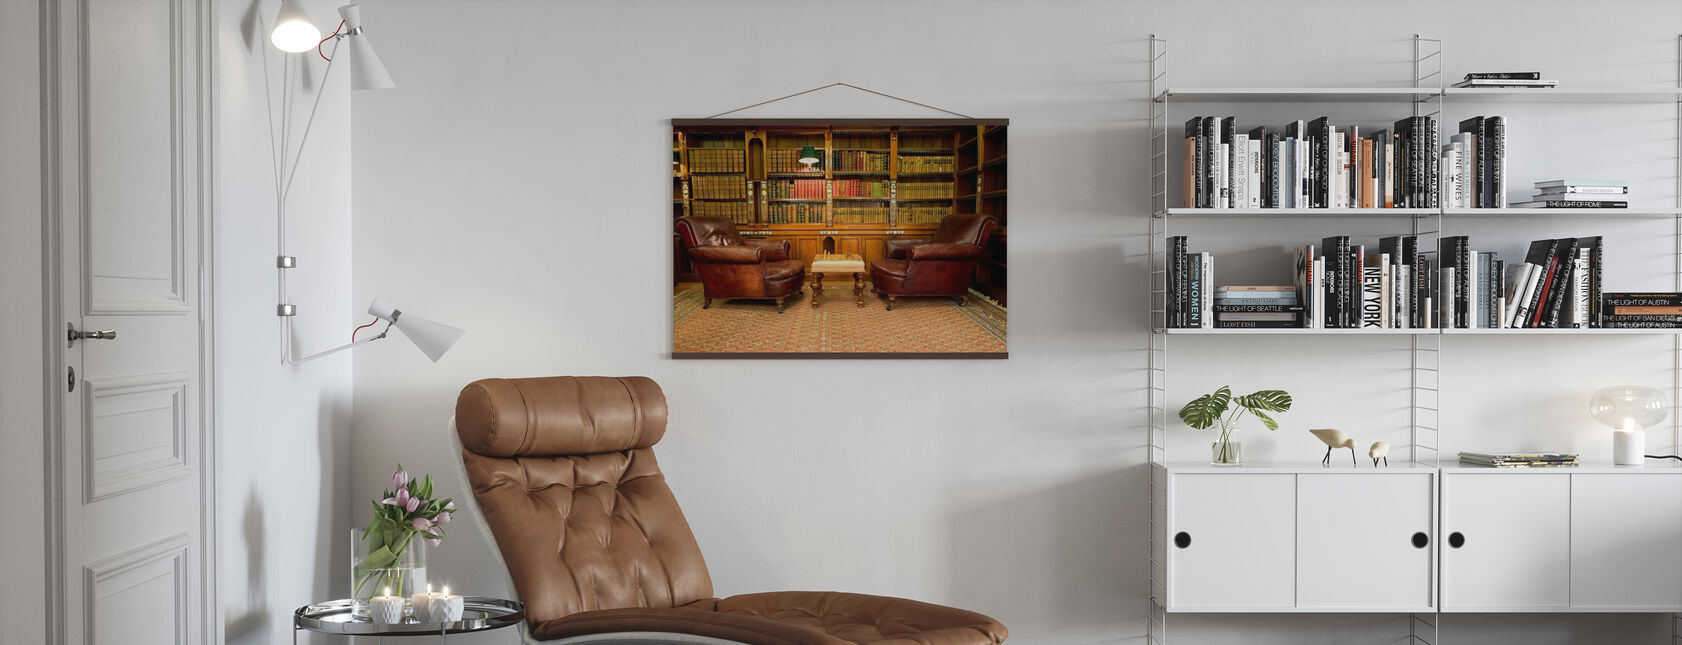 Old Library - Poster - Living Room